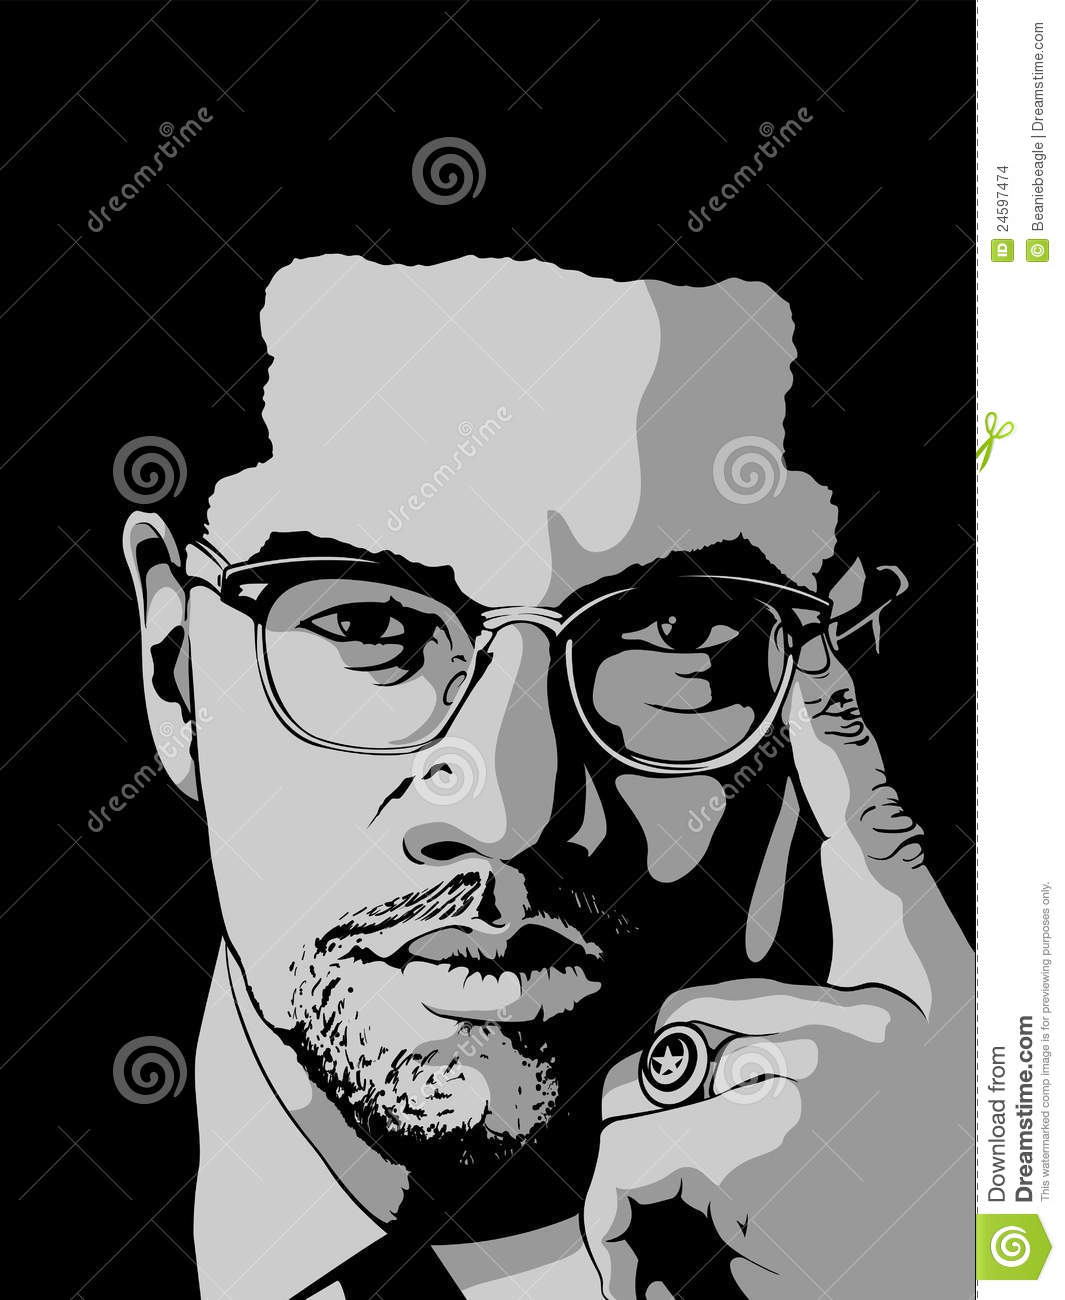 Malcolm X Editorial Stock Image Illustration Of Equality